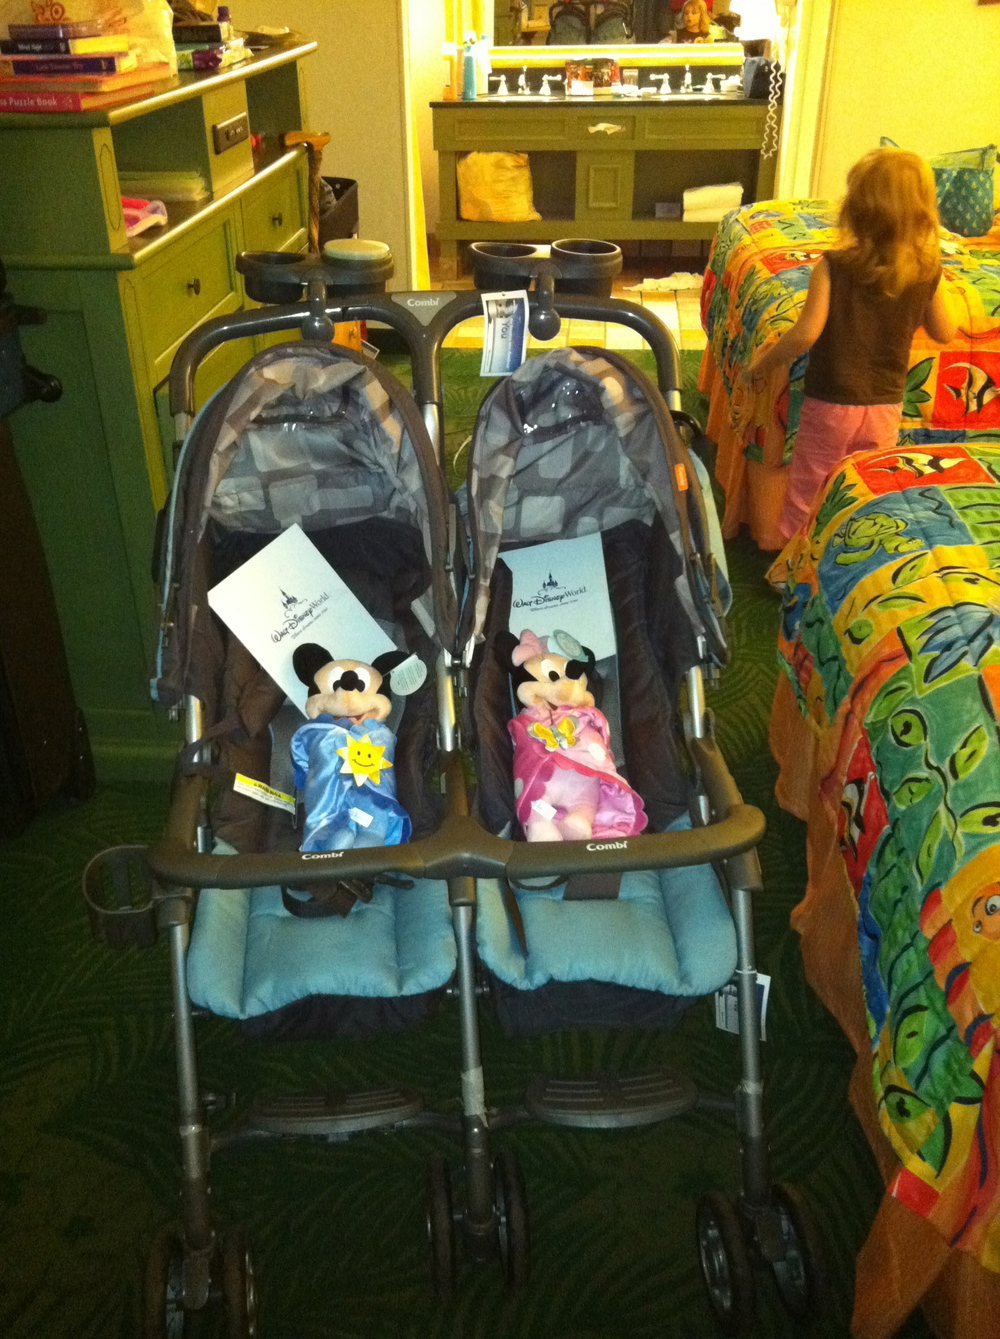 I will never take a side-by-side stroller to Walt Disney World again, but that's a story for a different day...